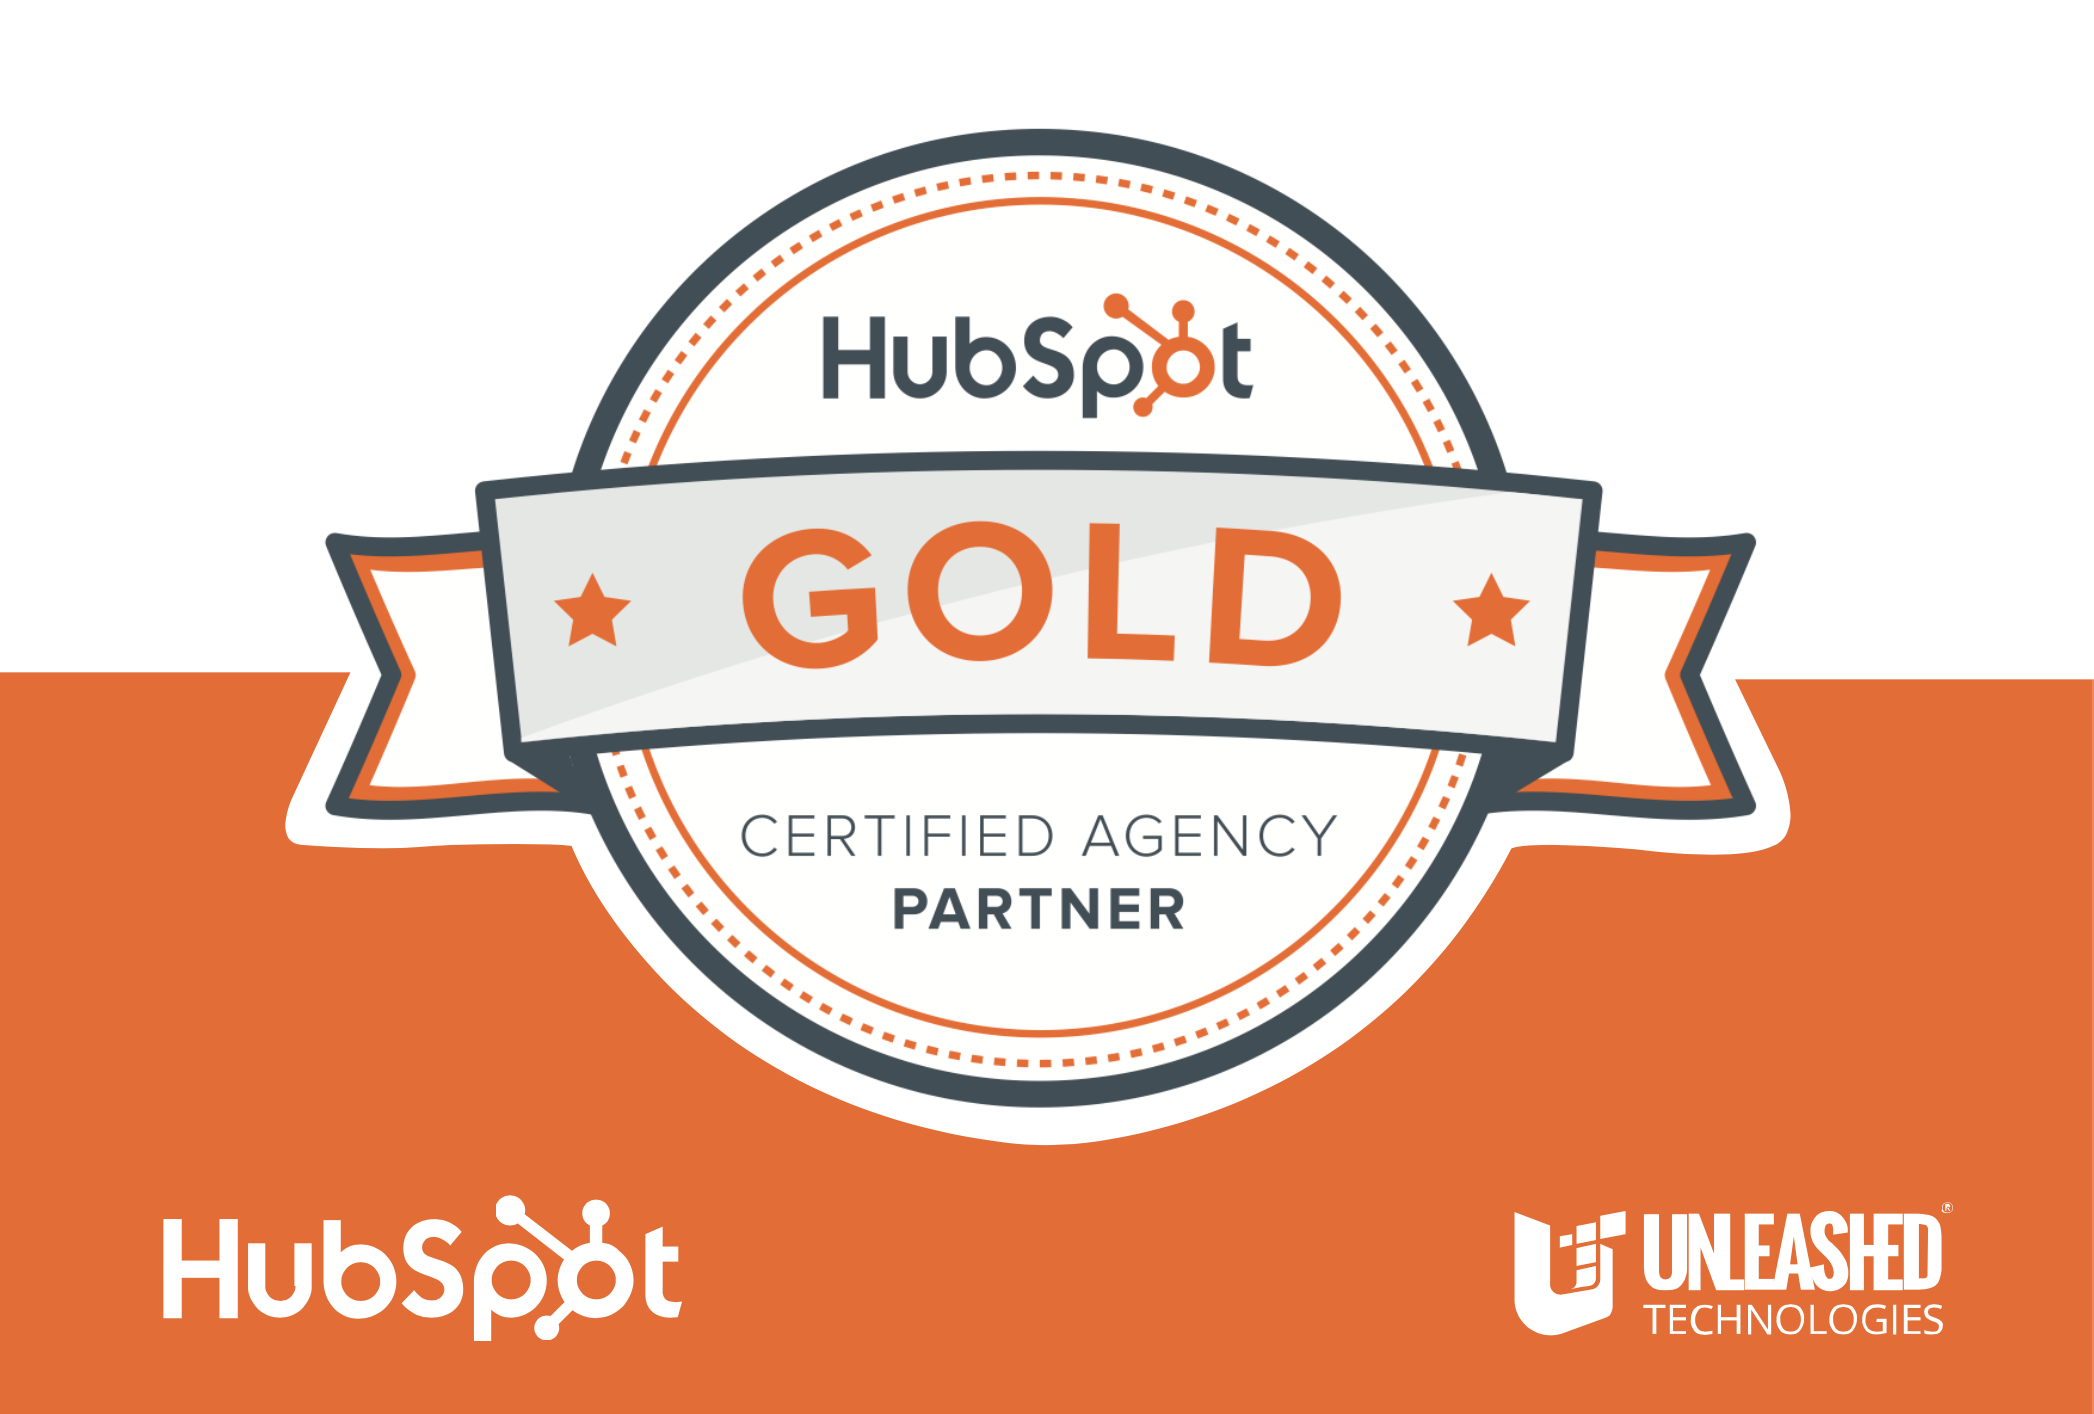 HubSpot Certified Gold Agency Partner - Partner badge